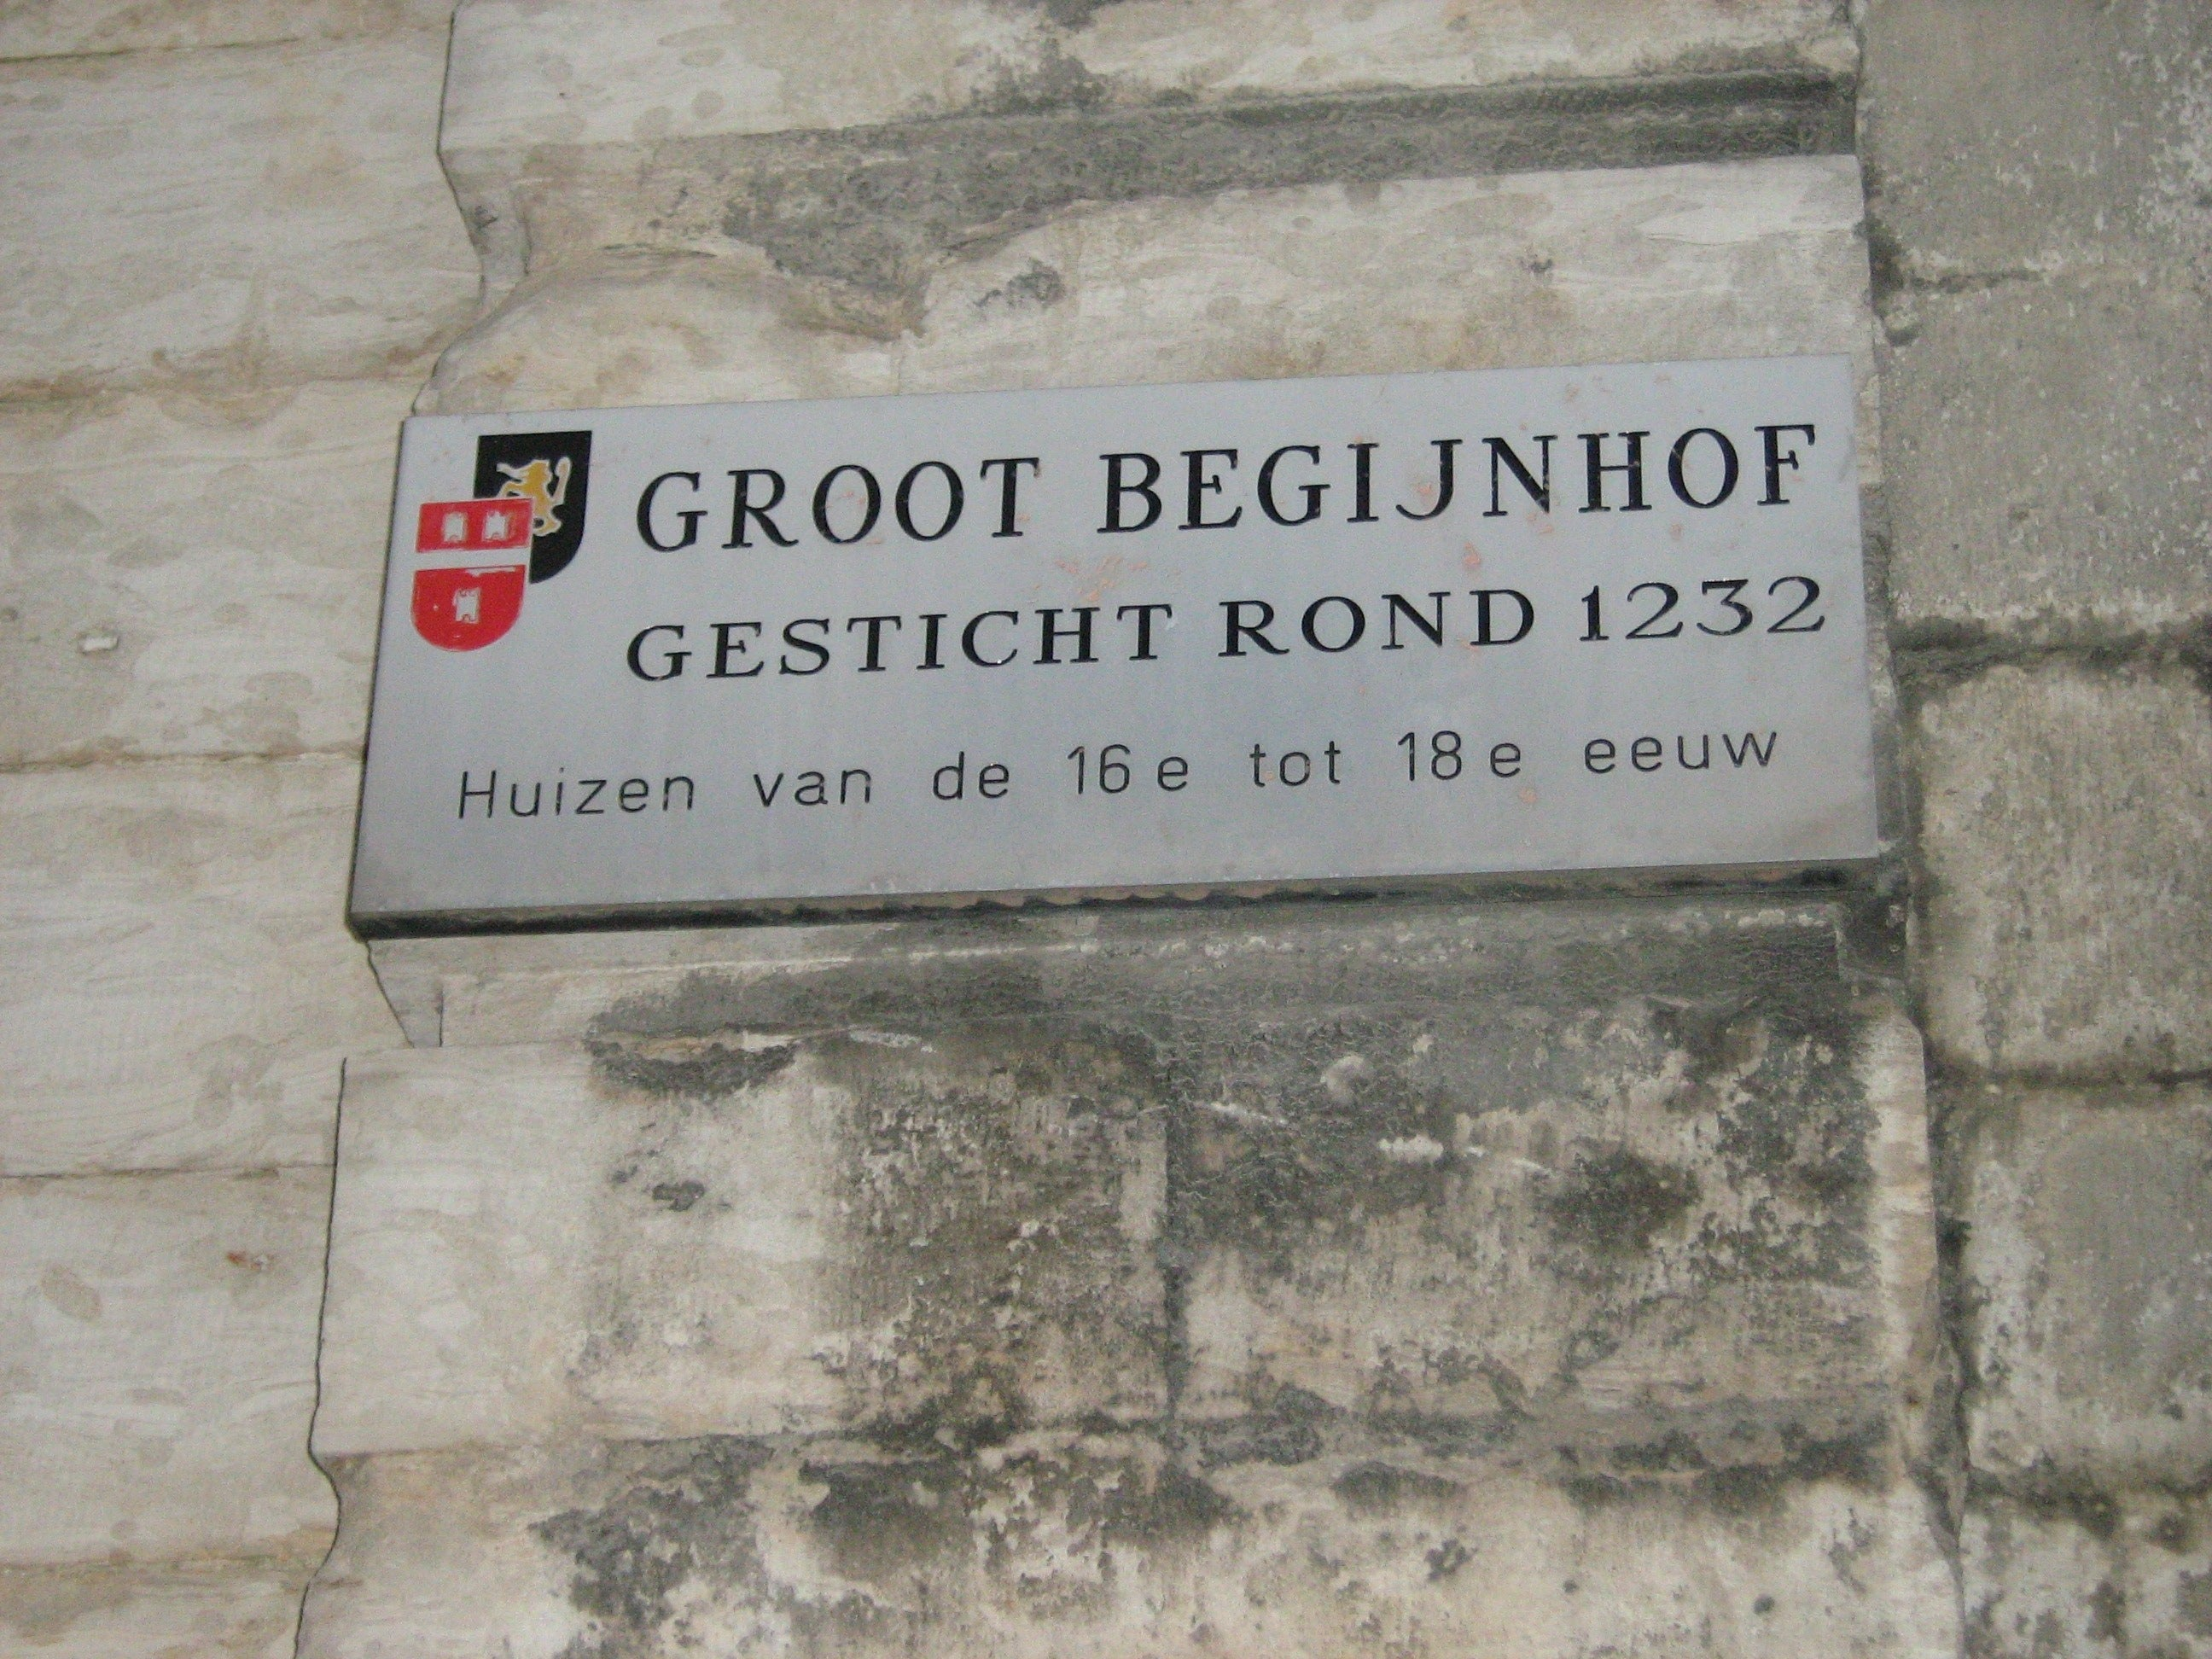 Grand Béguinage (Groot Begijnhof)